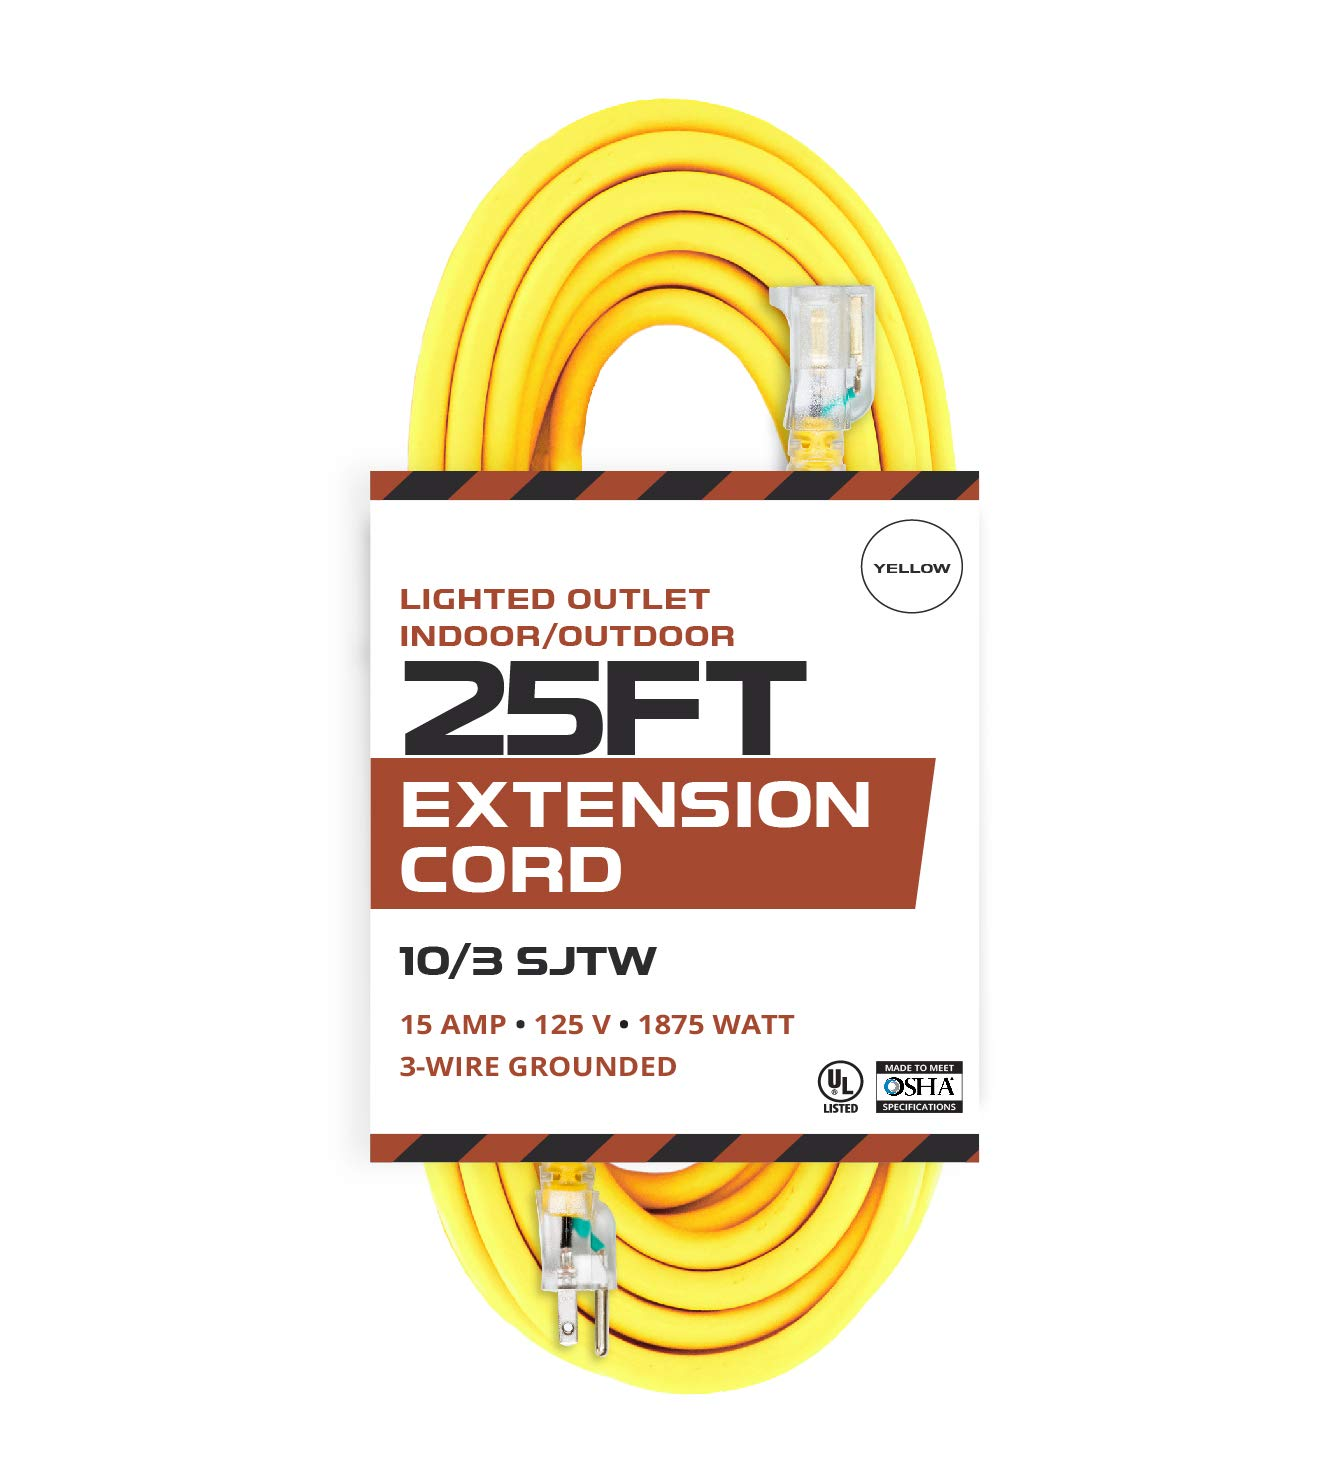 25 Foot Lighted Outdoor Extension Cord - 10/3 SJTW Yellow 10 Gauge Extension Cable with 3 Prong Grounded Plug for Safety - Great for Garden and Major Appliances